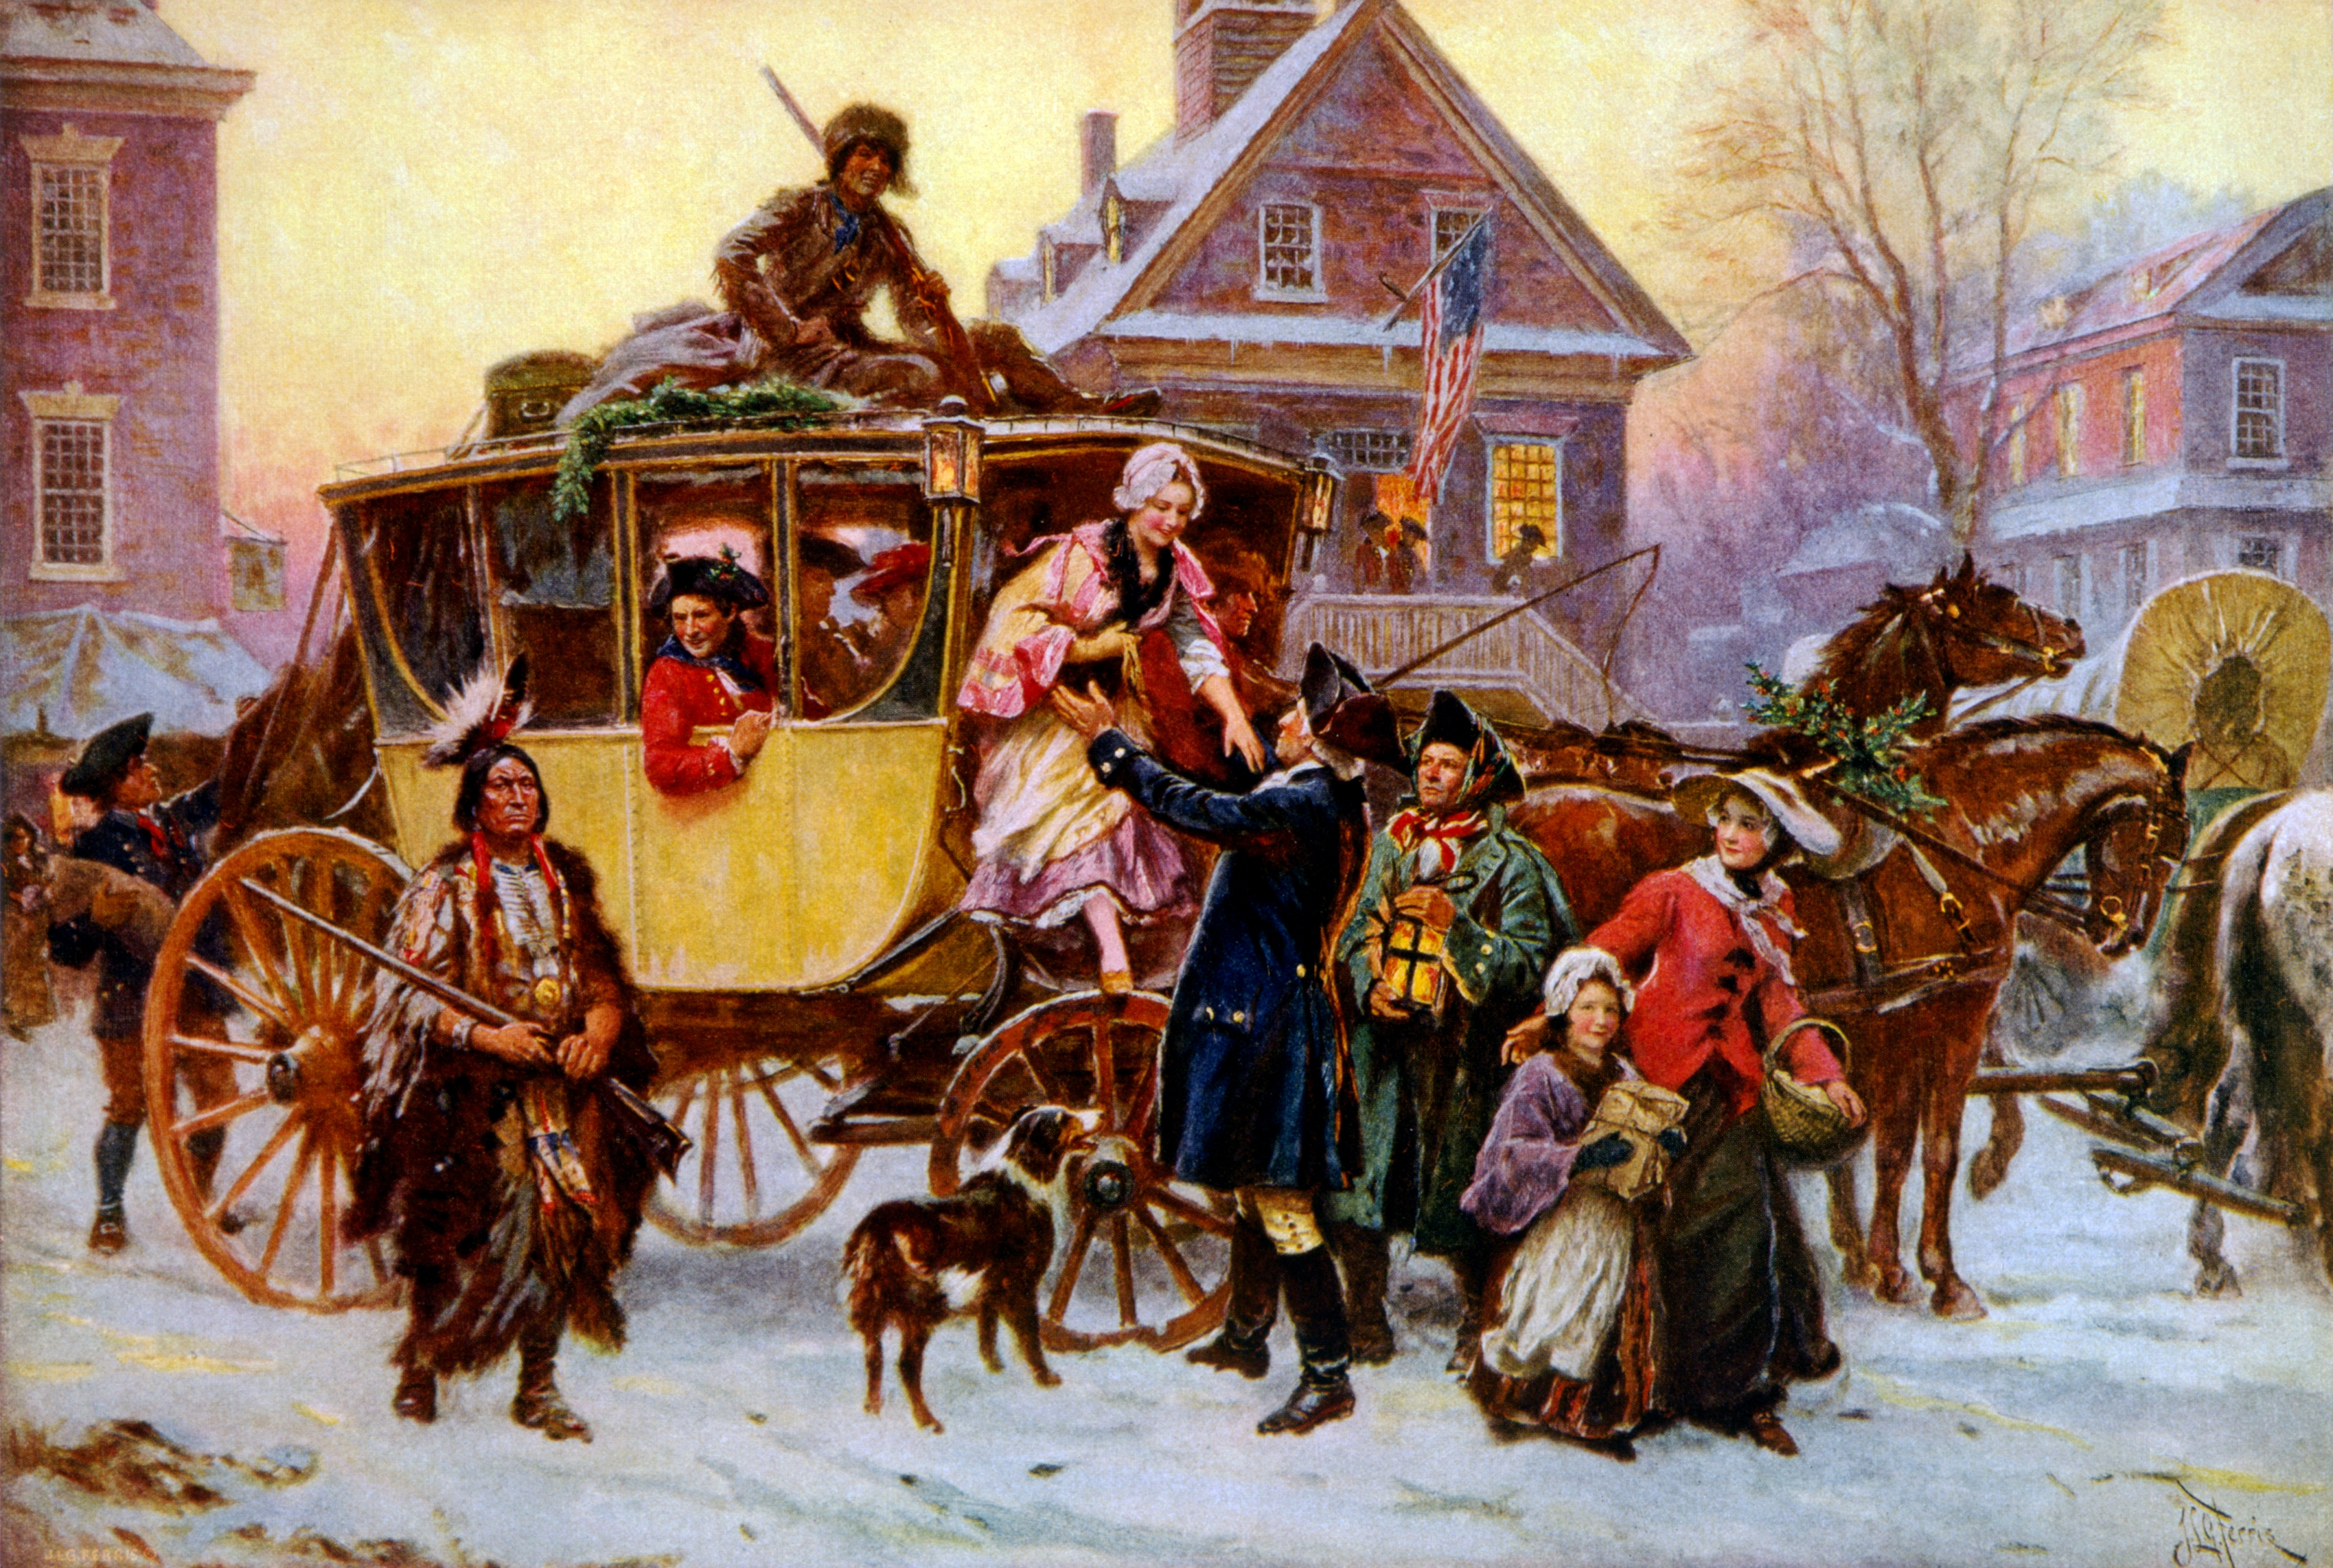 File:The Christmas coach 1795 cph.3g07156.jpg